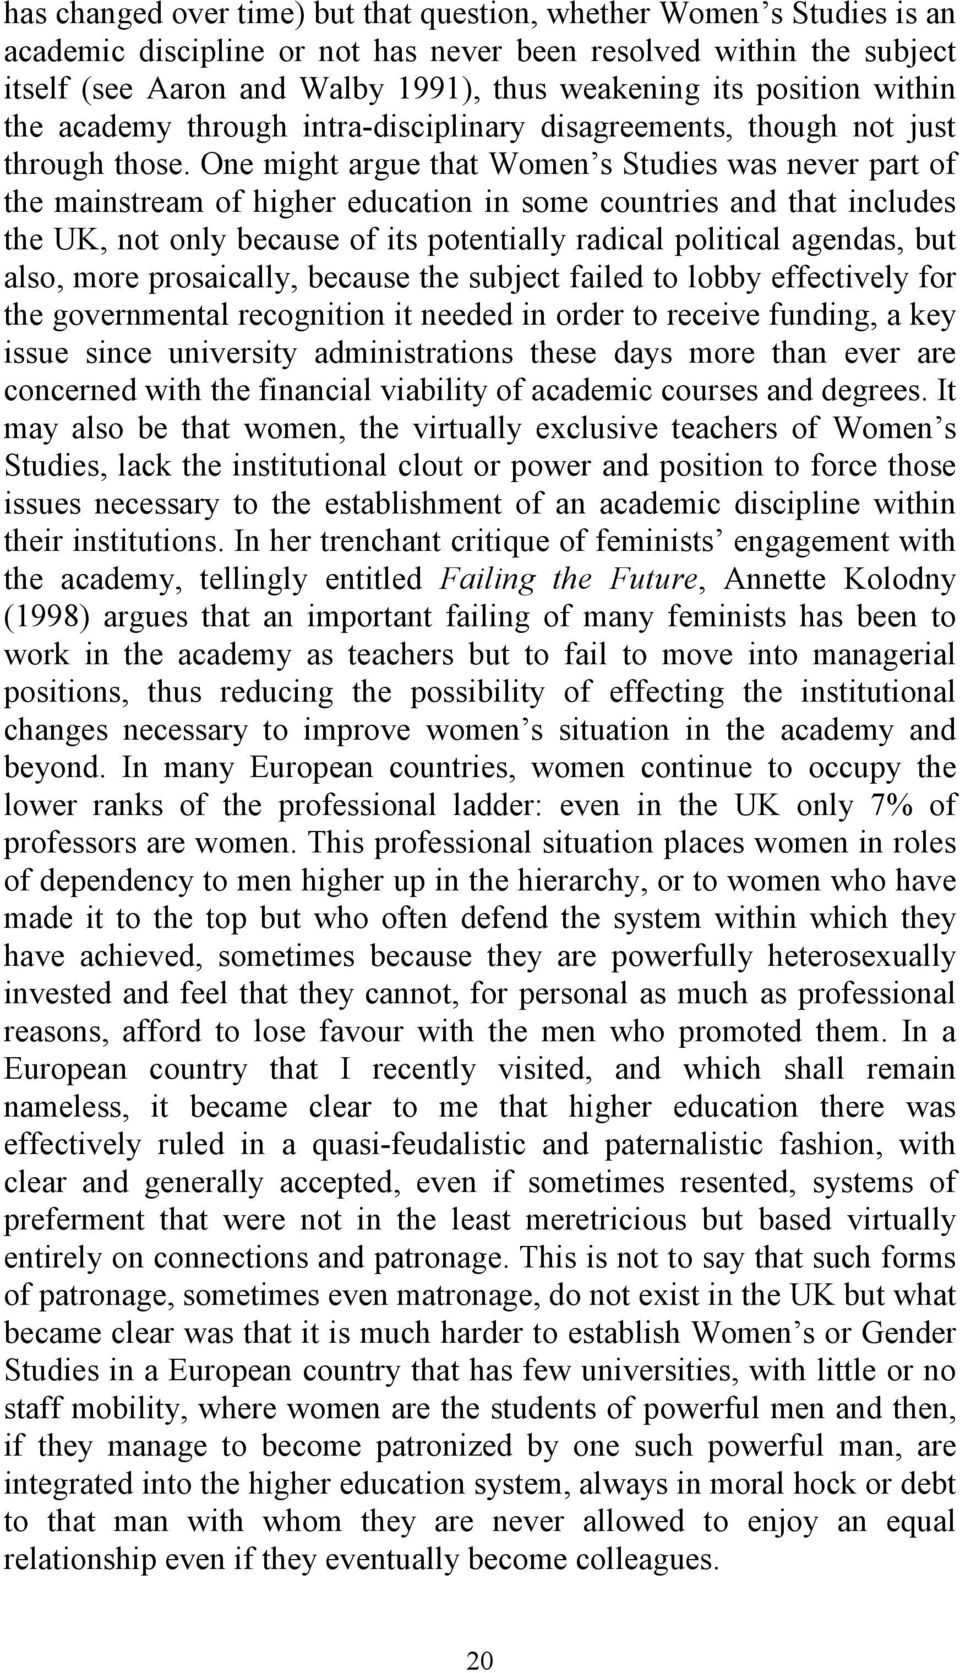 One might argue that Women s Studies was never part of the mainstream of higher education in some countries and that includes the UK, not only because of its potentially radical political agendas,